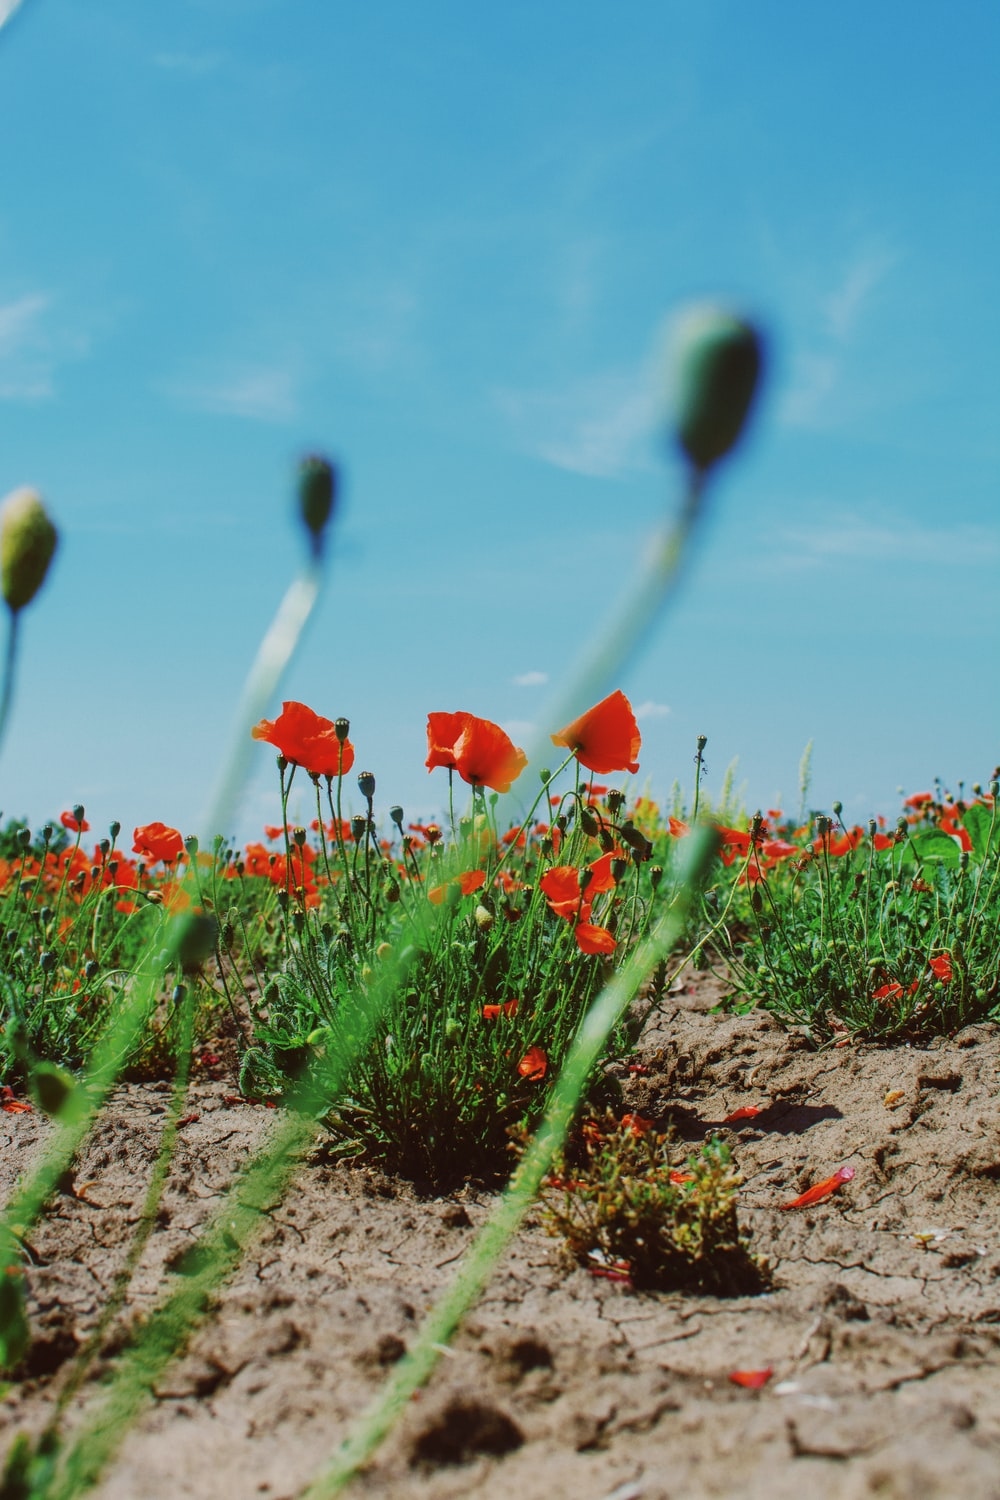 red flowers on brown soil during daytime